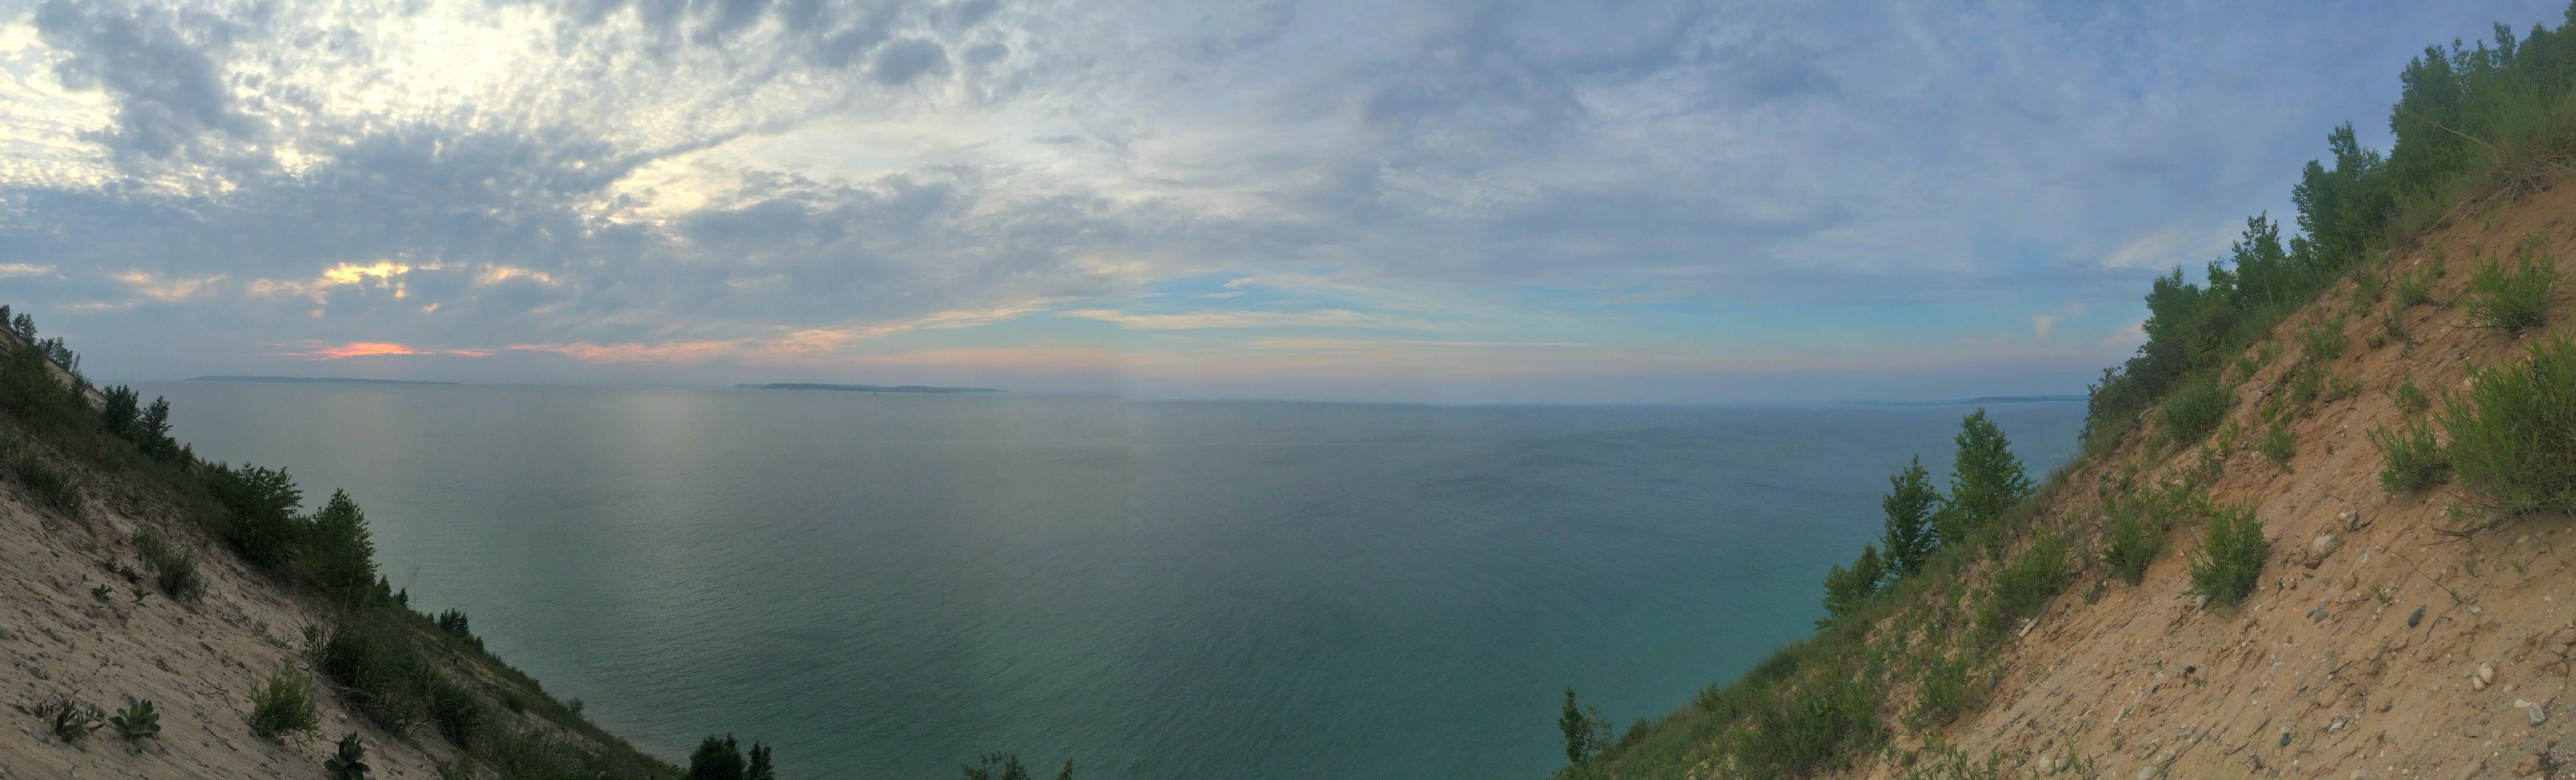 pyramid point, lake michigan view